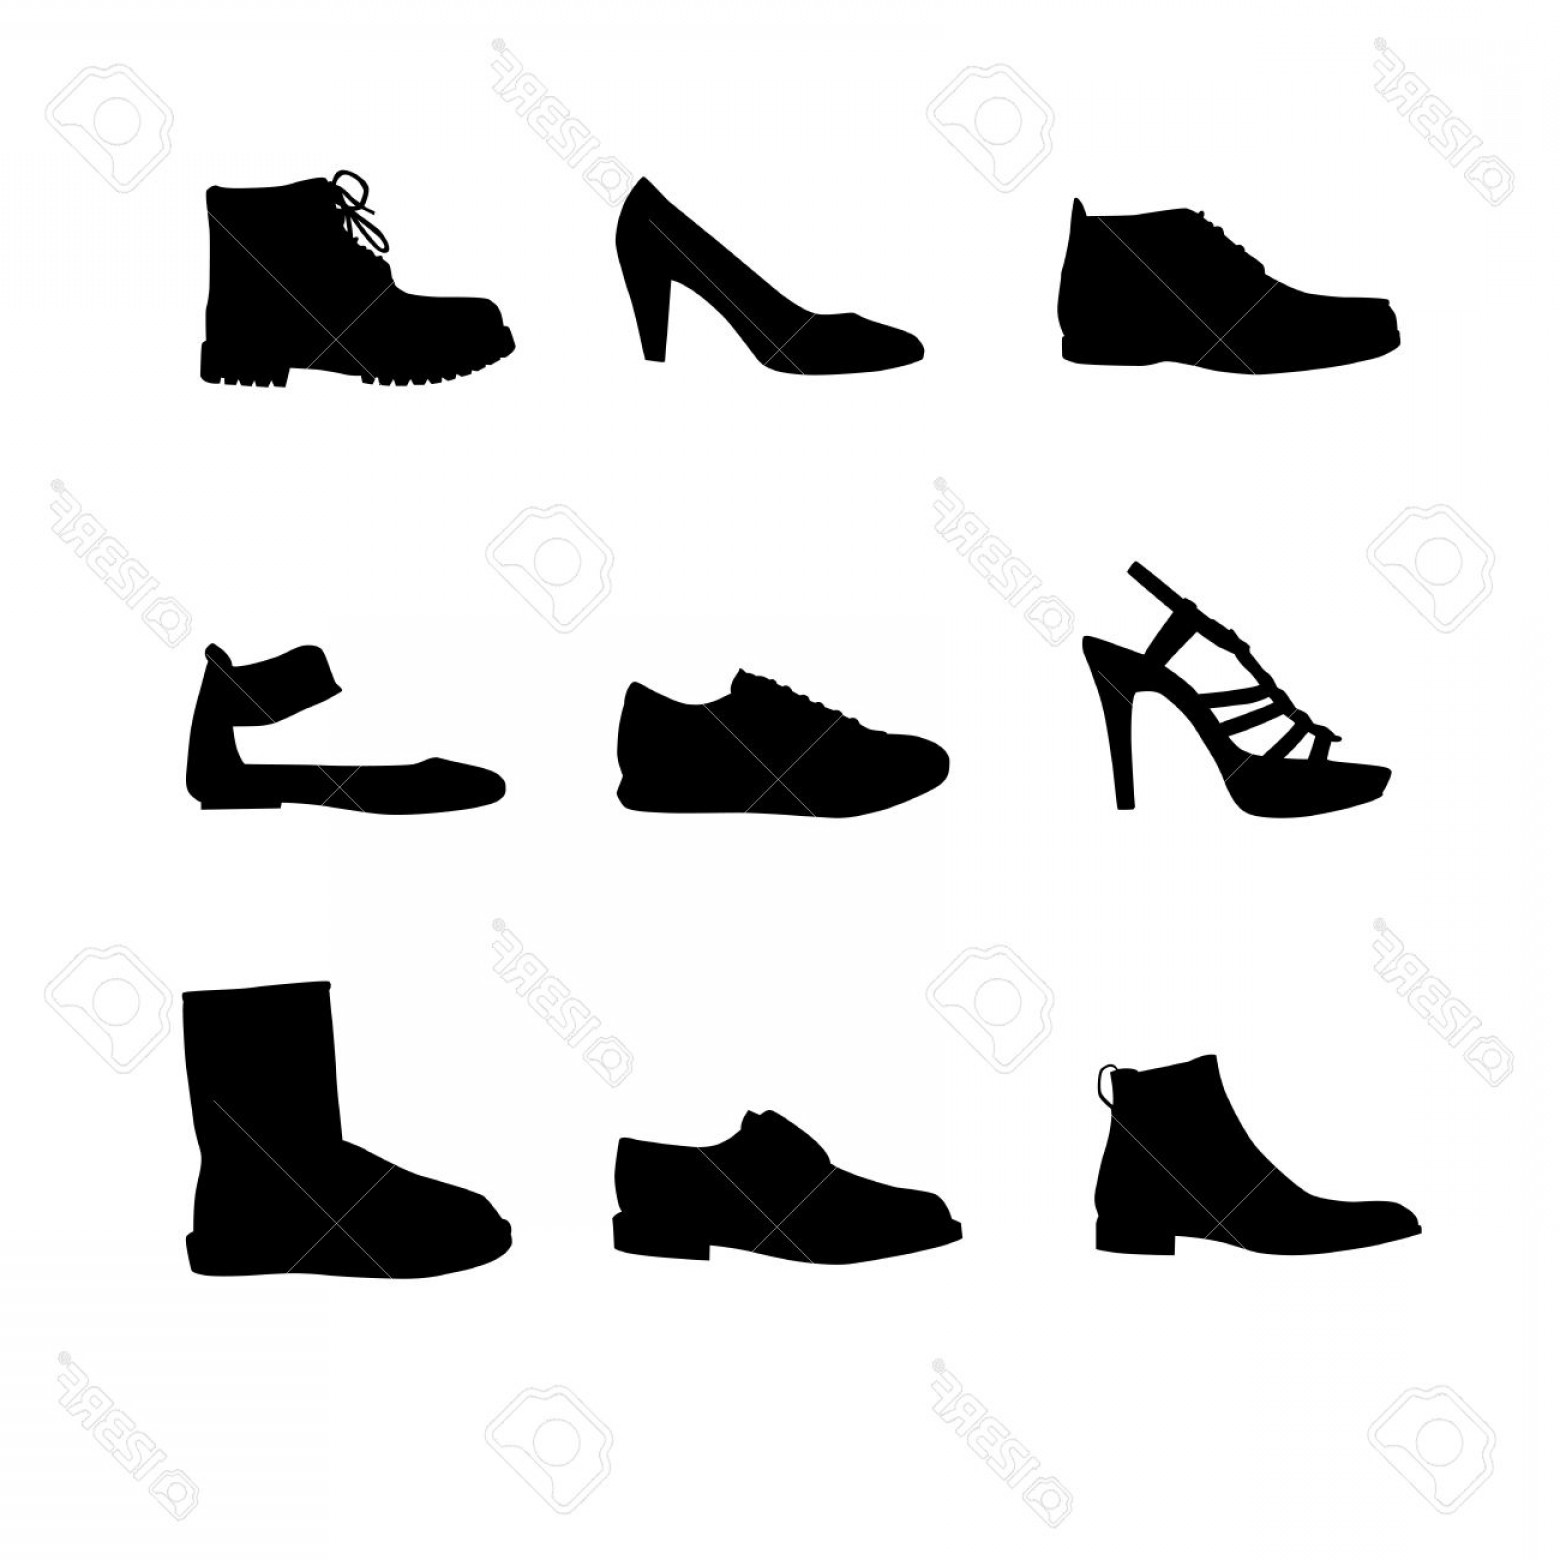 Sneaker Silhouette Vector: Photoblack Shoes Silhouettes On White Background